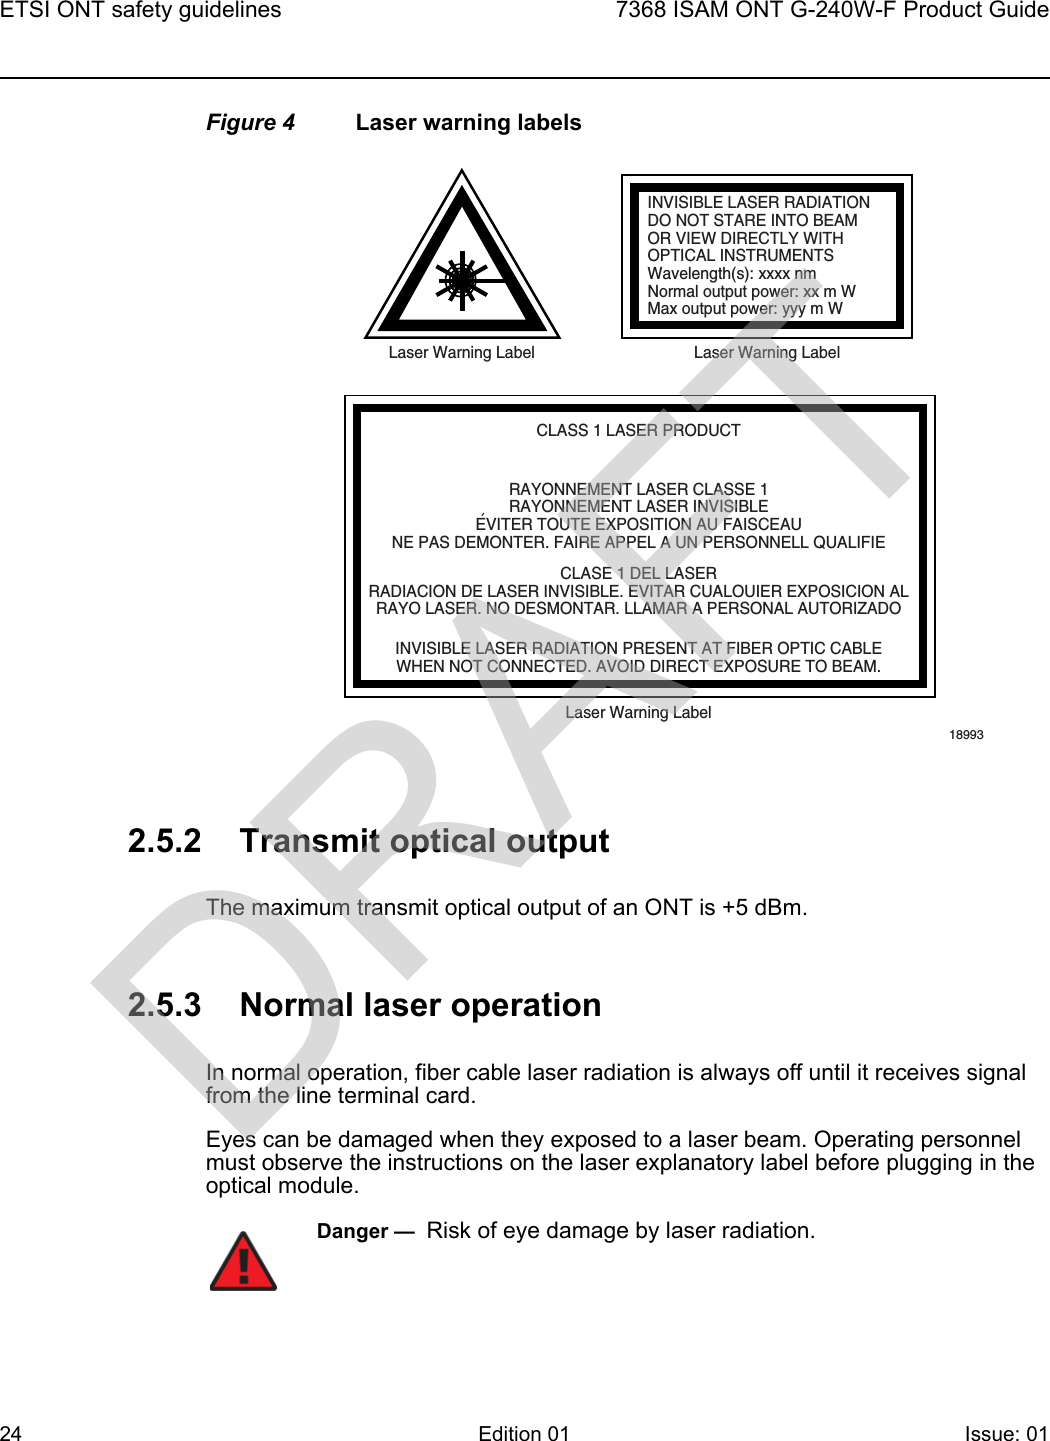 Nokia Bell G240WF G-240W-F User Manual 7368 ISAM ONT G